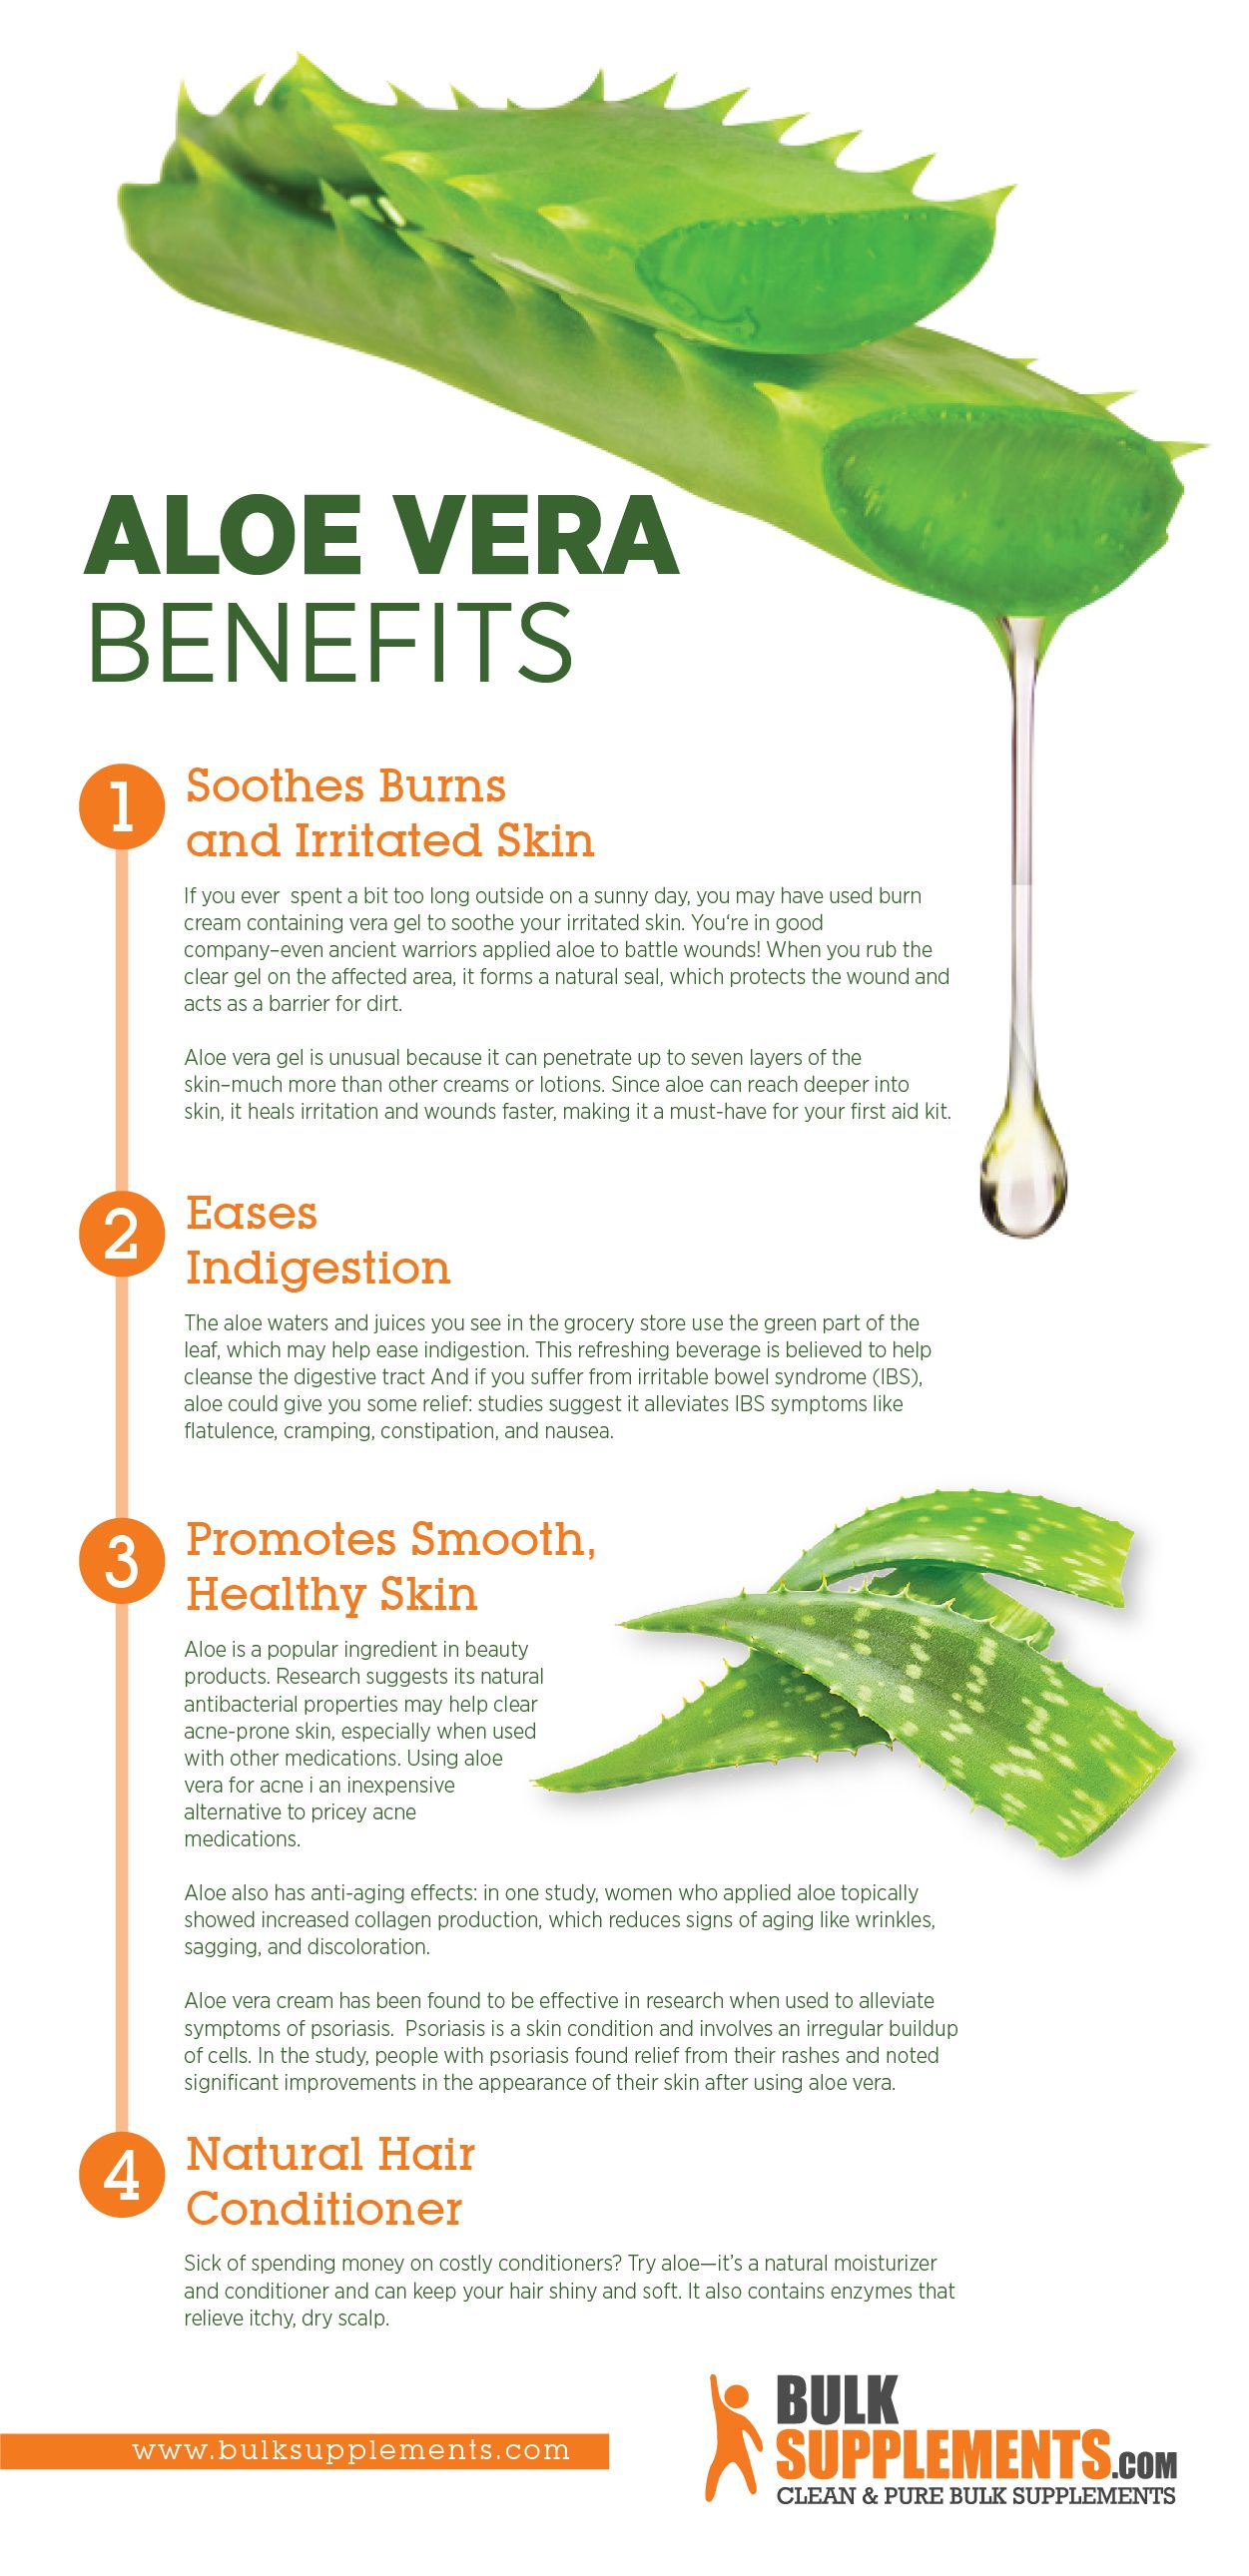 Aloe Vera Extract 3 Impressive Benefits For Your Health Aloe Vera Benefits Coconut Health Benefits Health